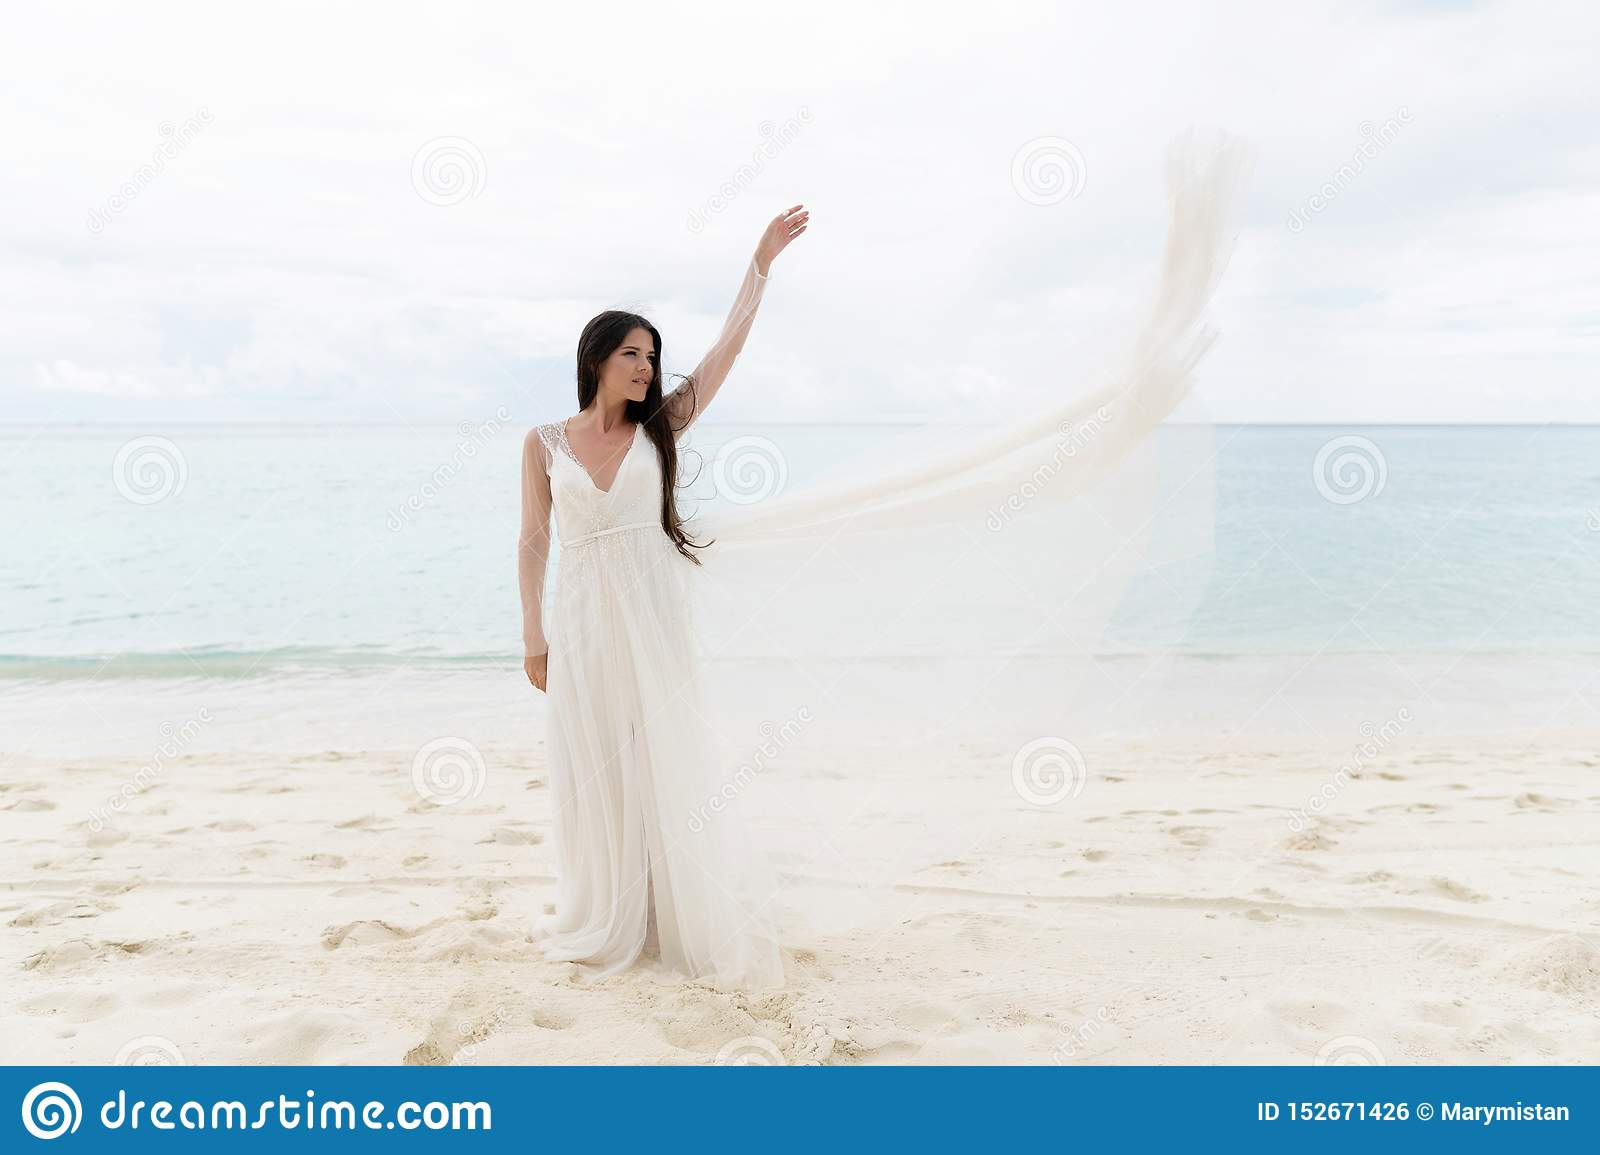 The bride throws a white dress in the air